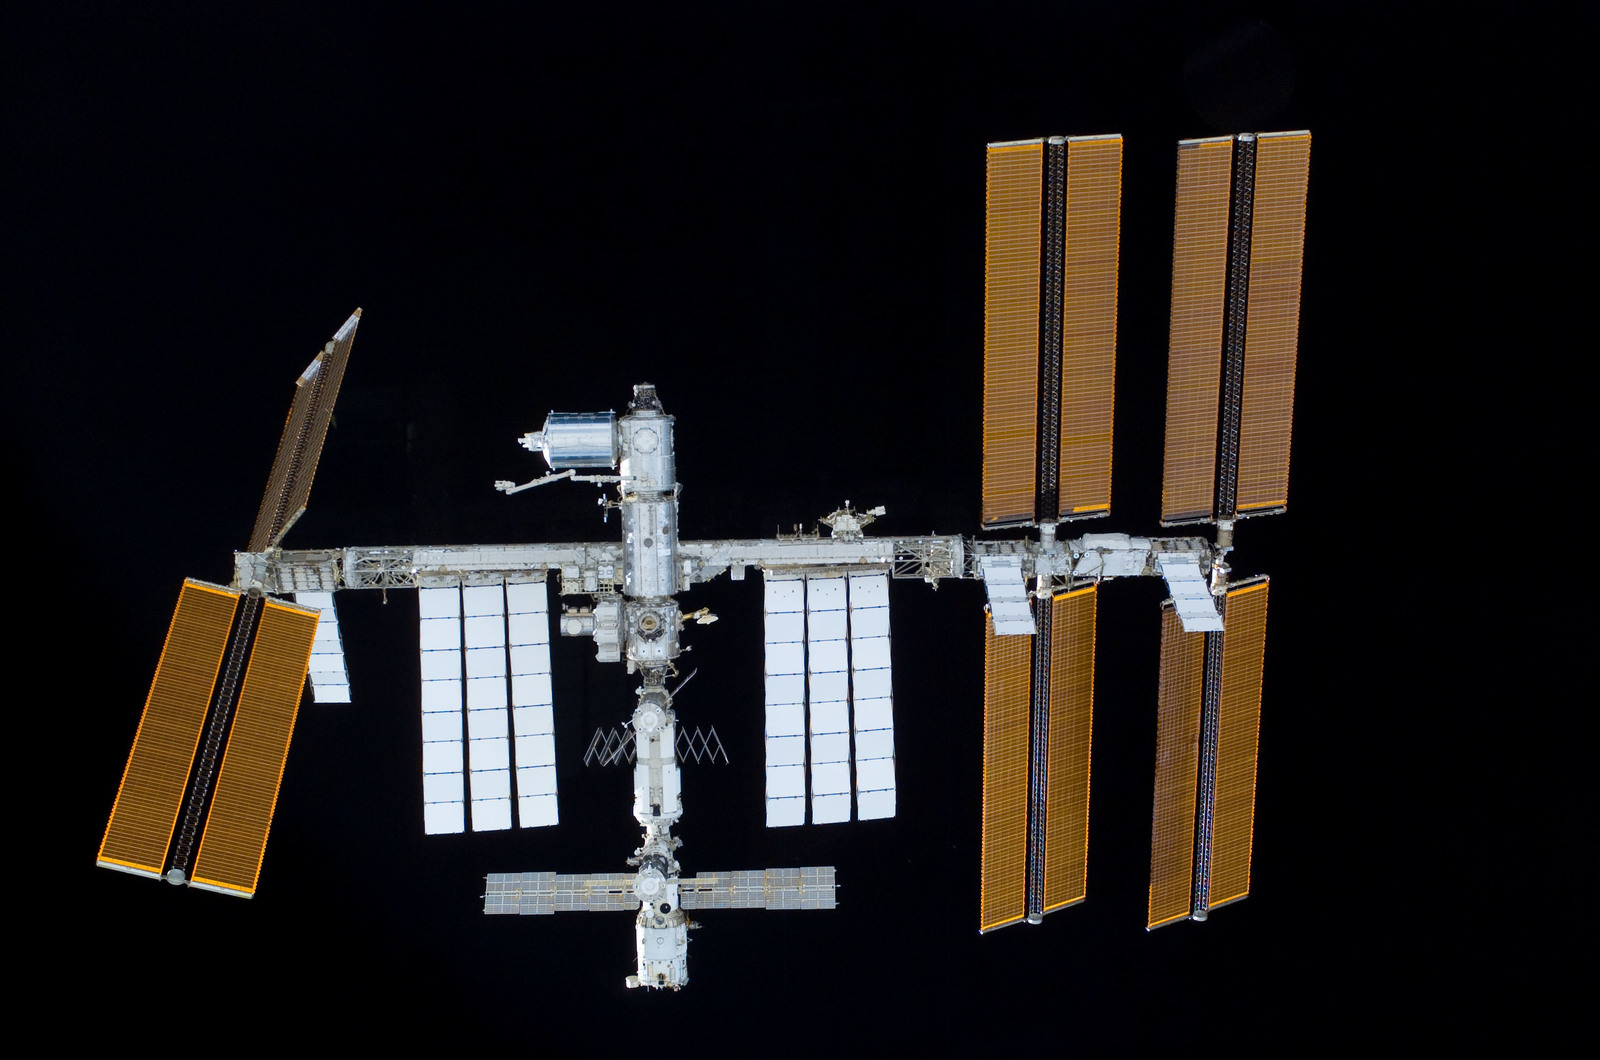 S122E011025 - STS-122 - View of ISS after STS-122 Undocking